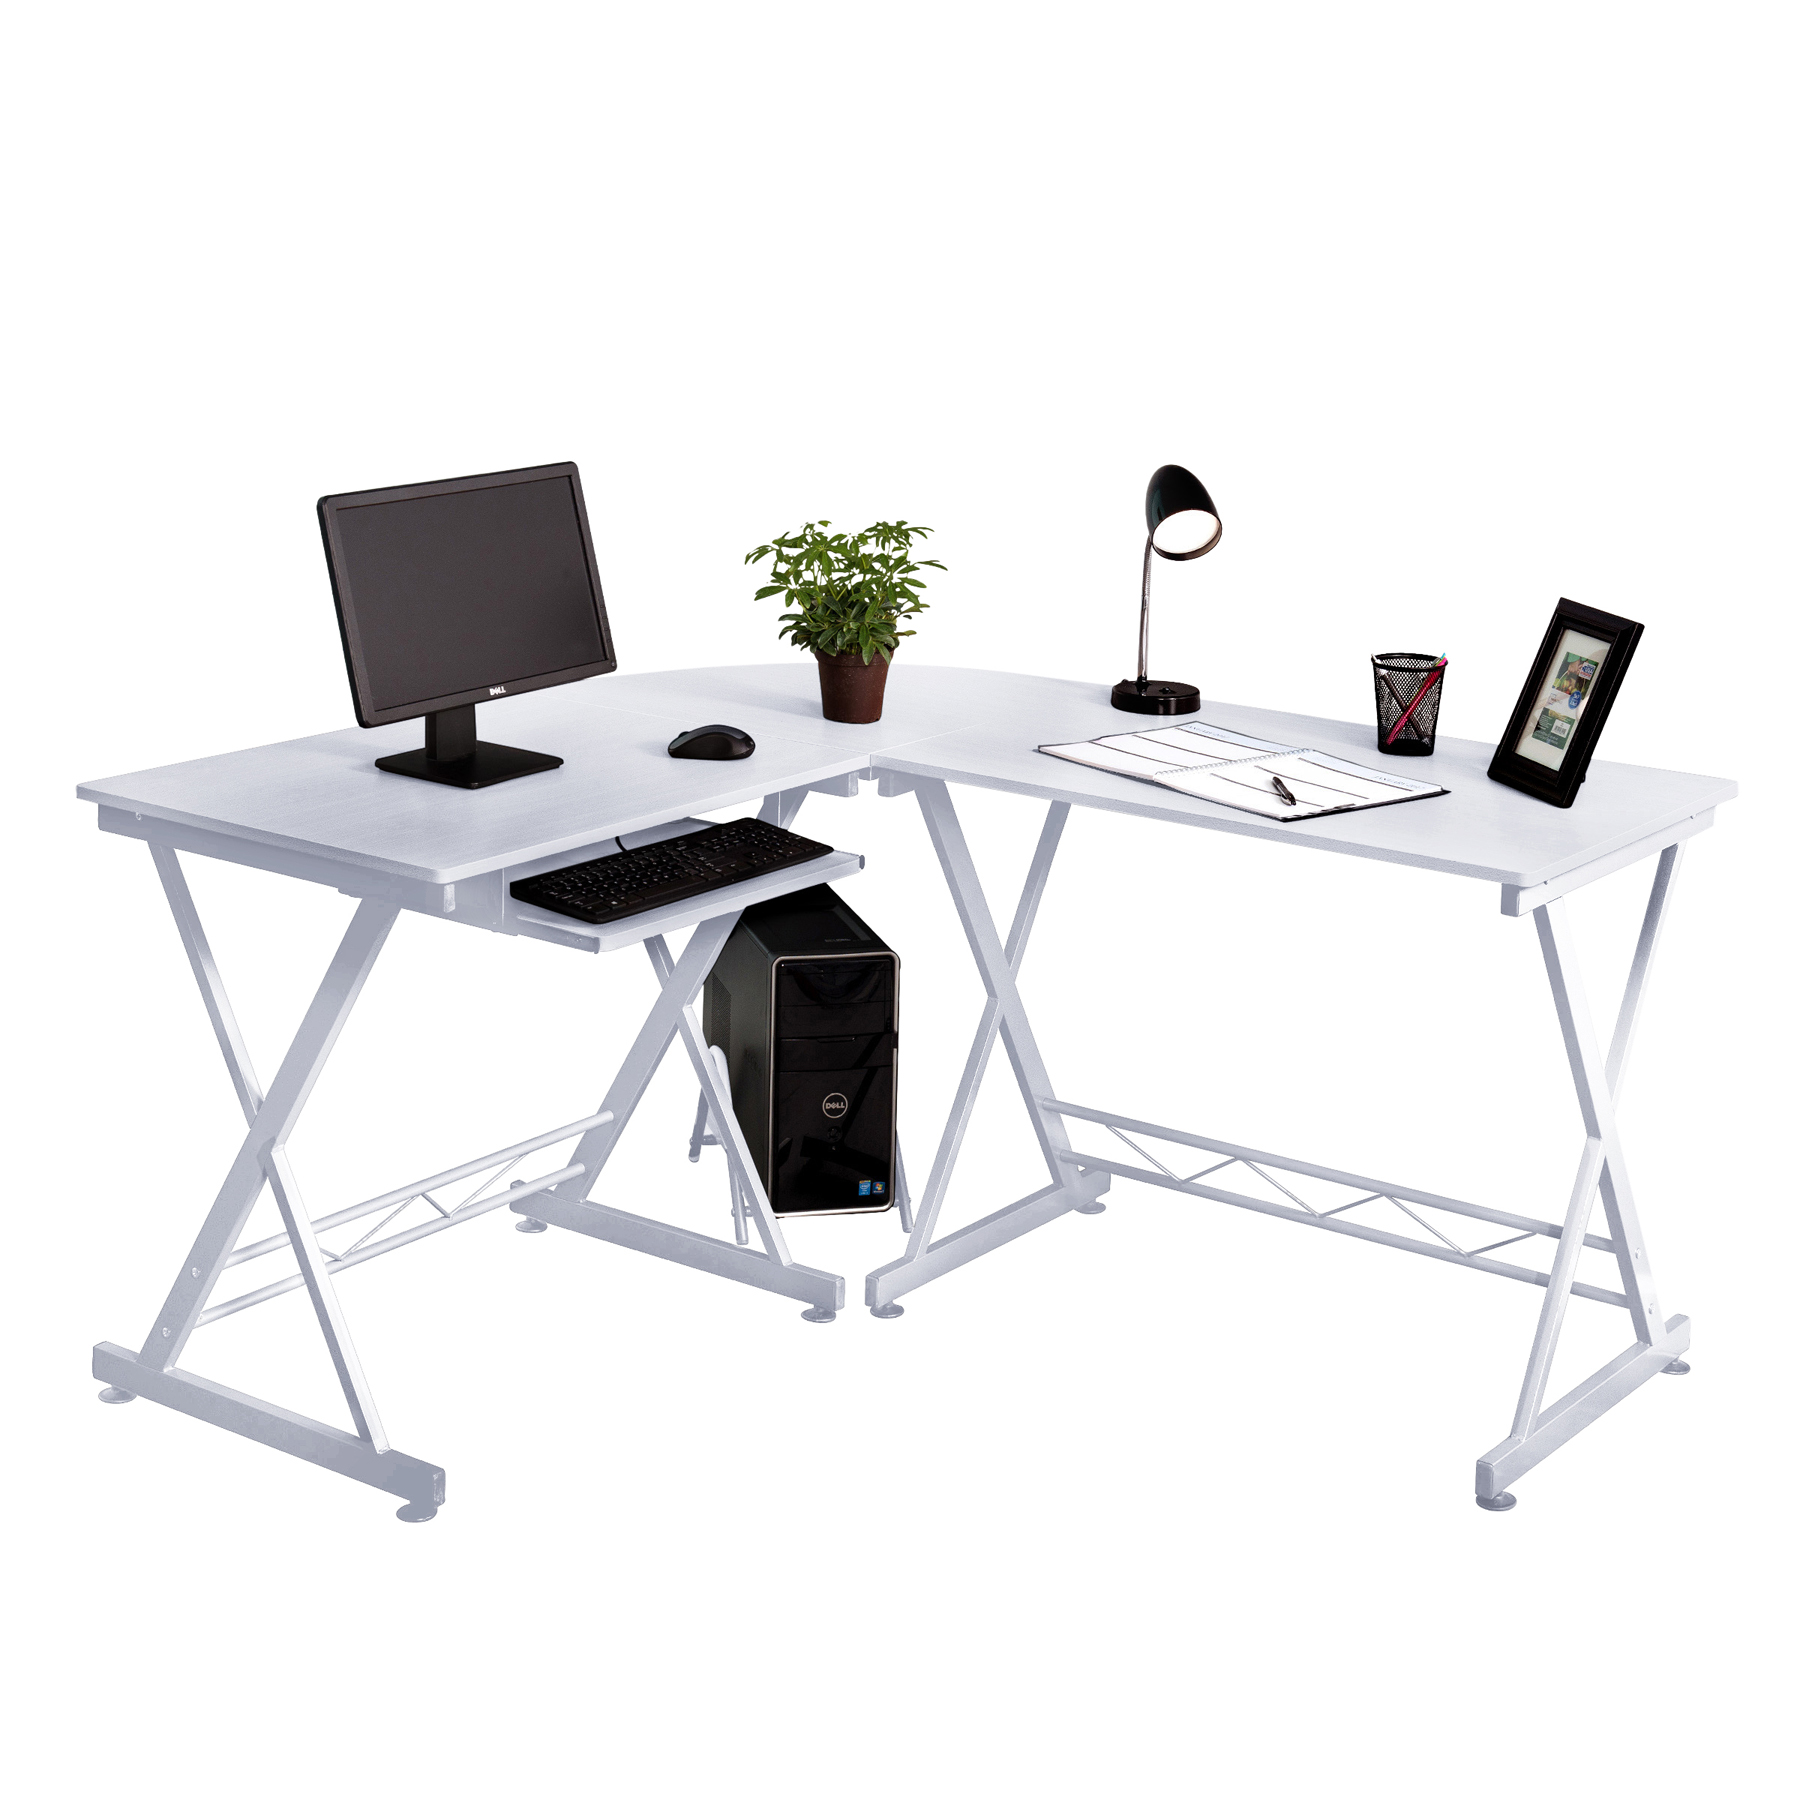 Fineboard Home Office L-Shaped Corner Desk, Beige/Silver